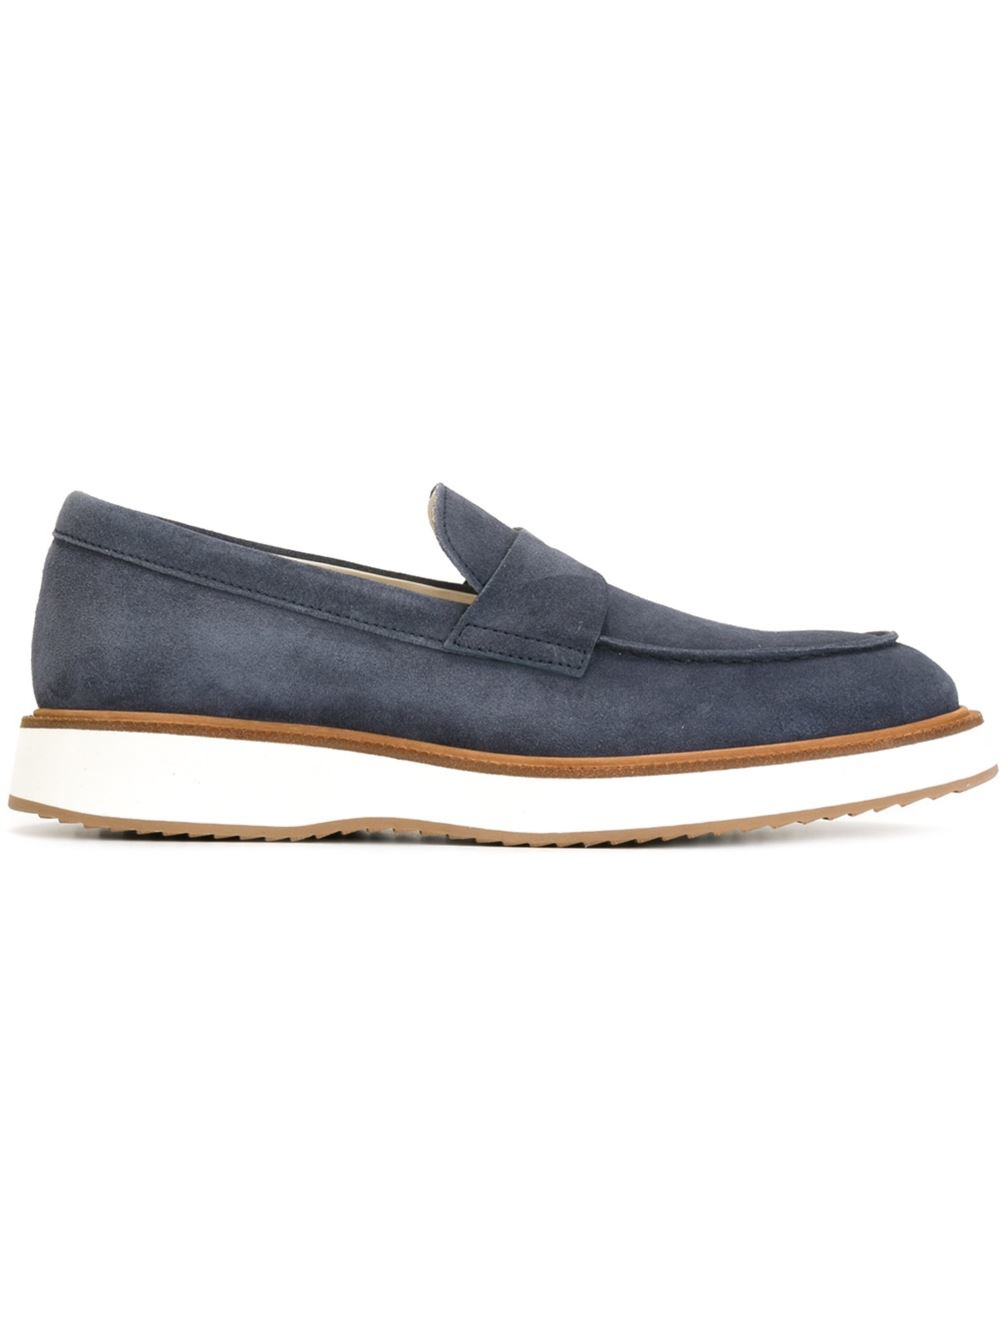 Hogan Rubber Sole Loafers in Blue for Men